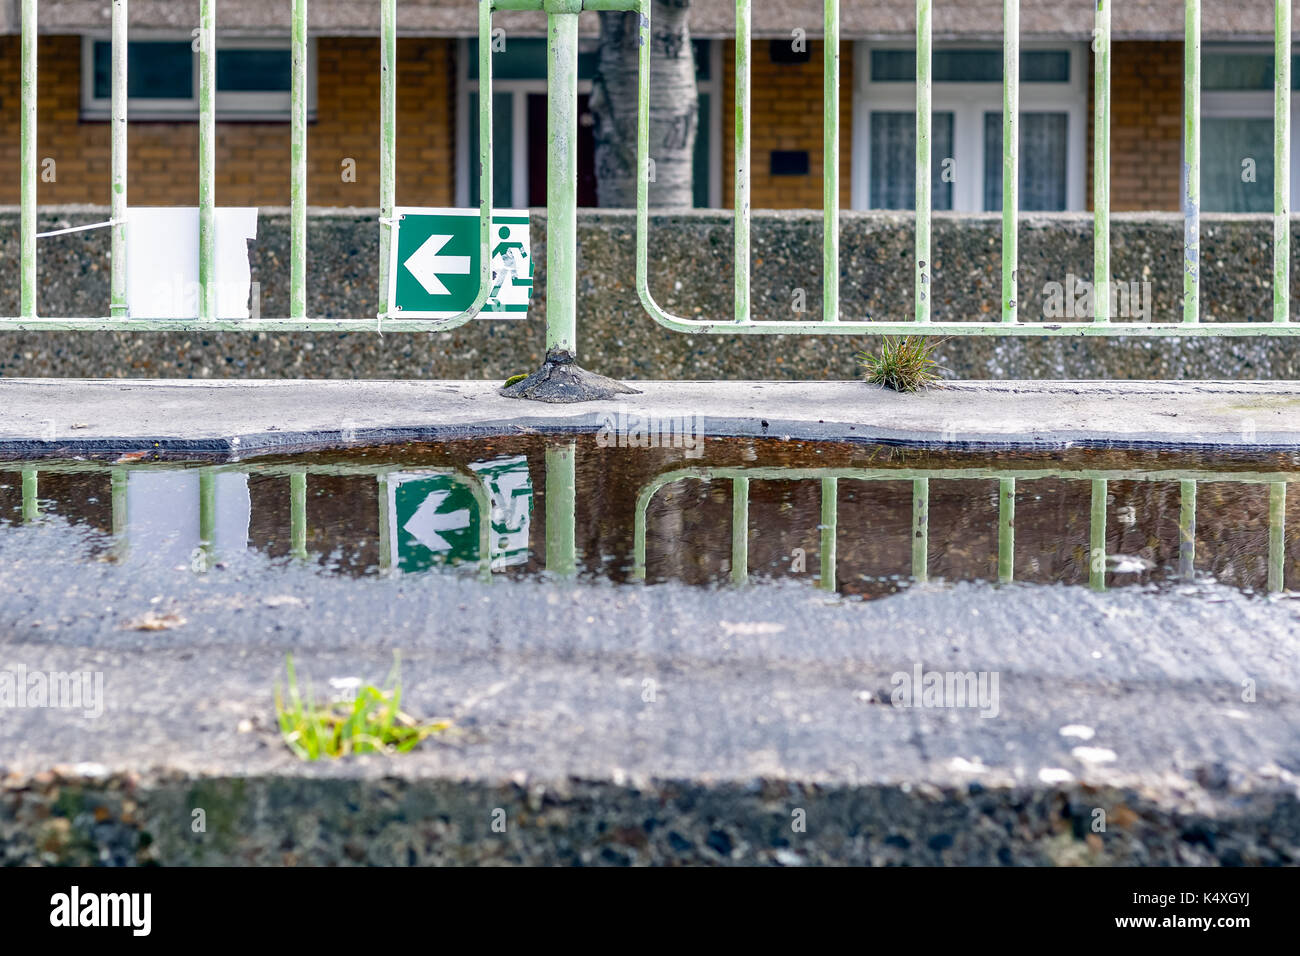 Broken green emergency exit sign and its reflection from a puddle for concept use - Stock Image